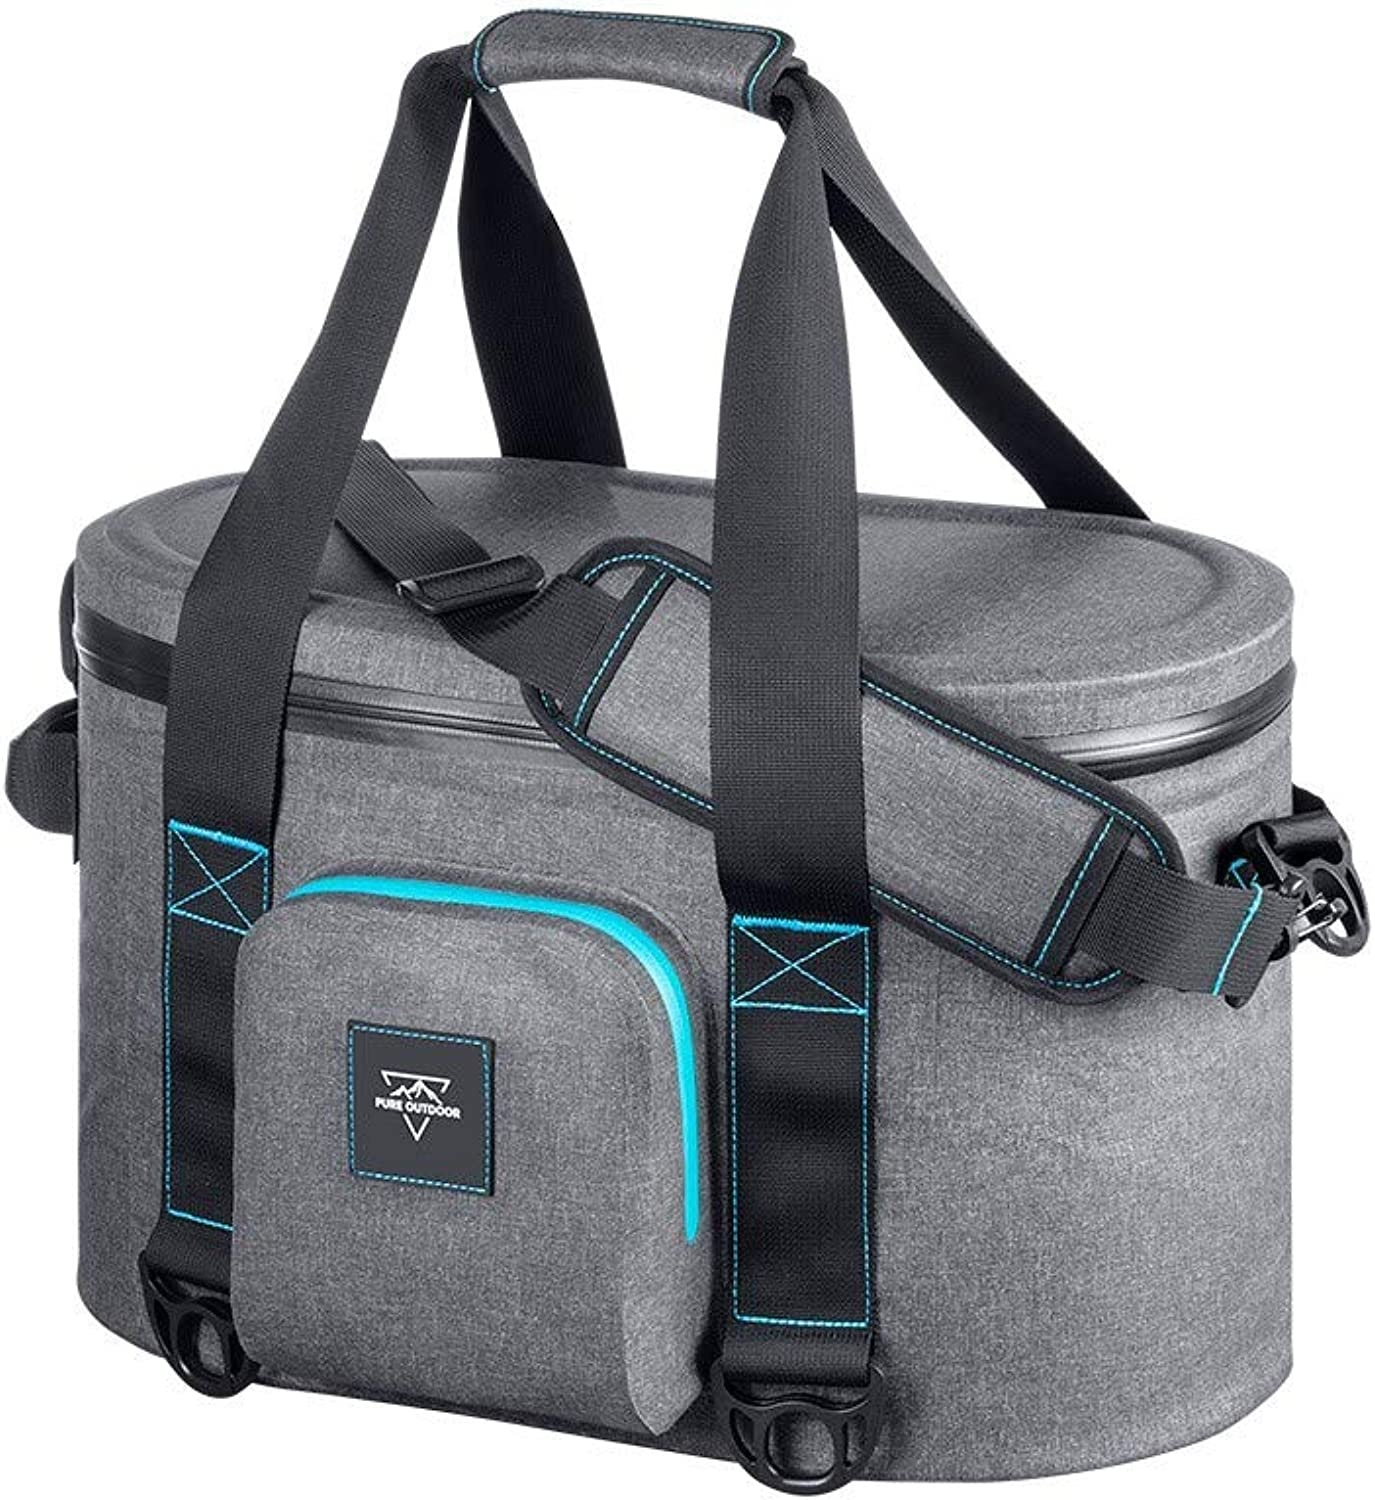 Monoprice 131258 Emperor Flip Portable Soft Cooler - Waterproof Exterior, IPX7-Rated Zippers Ideal for Camping, Fishing, BBQ - Pure Outdoor Collection